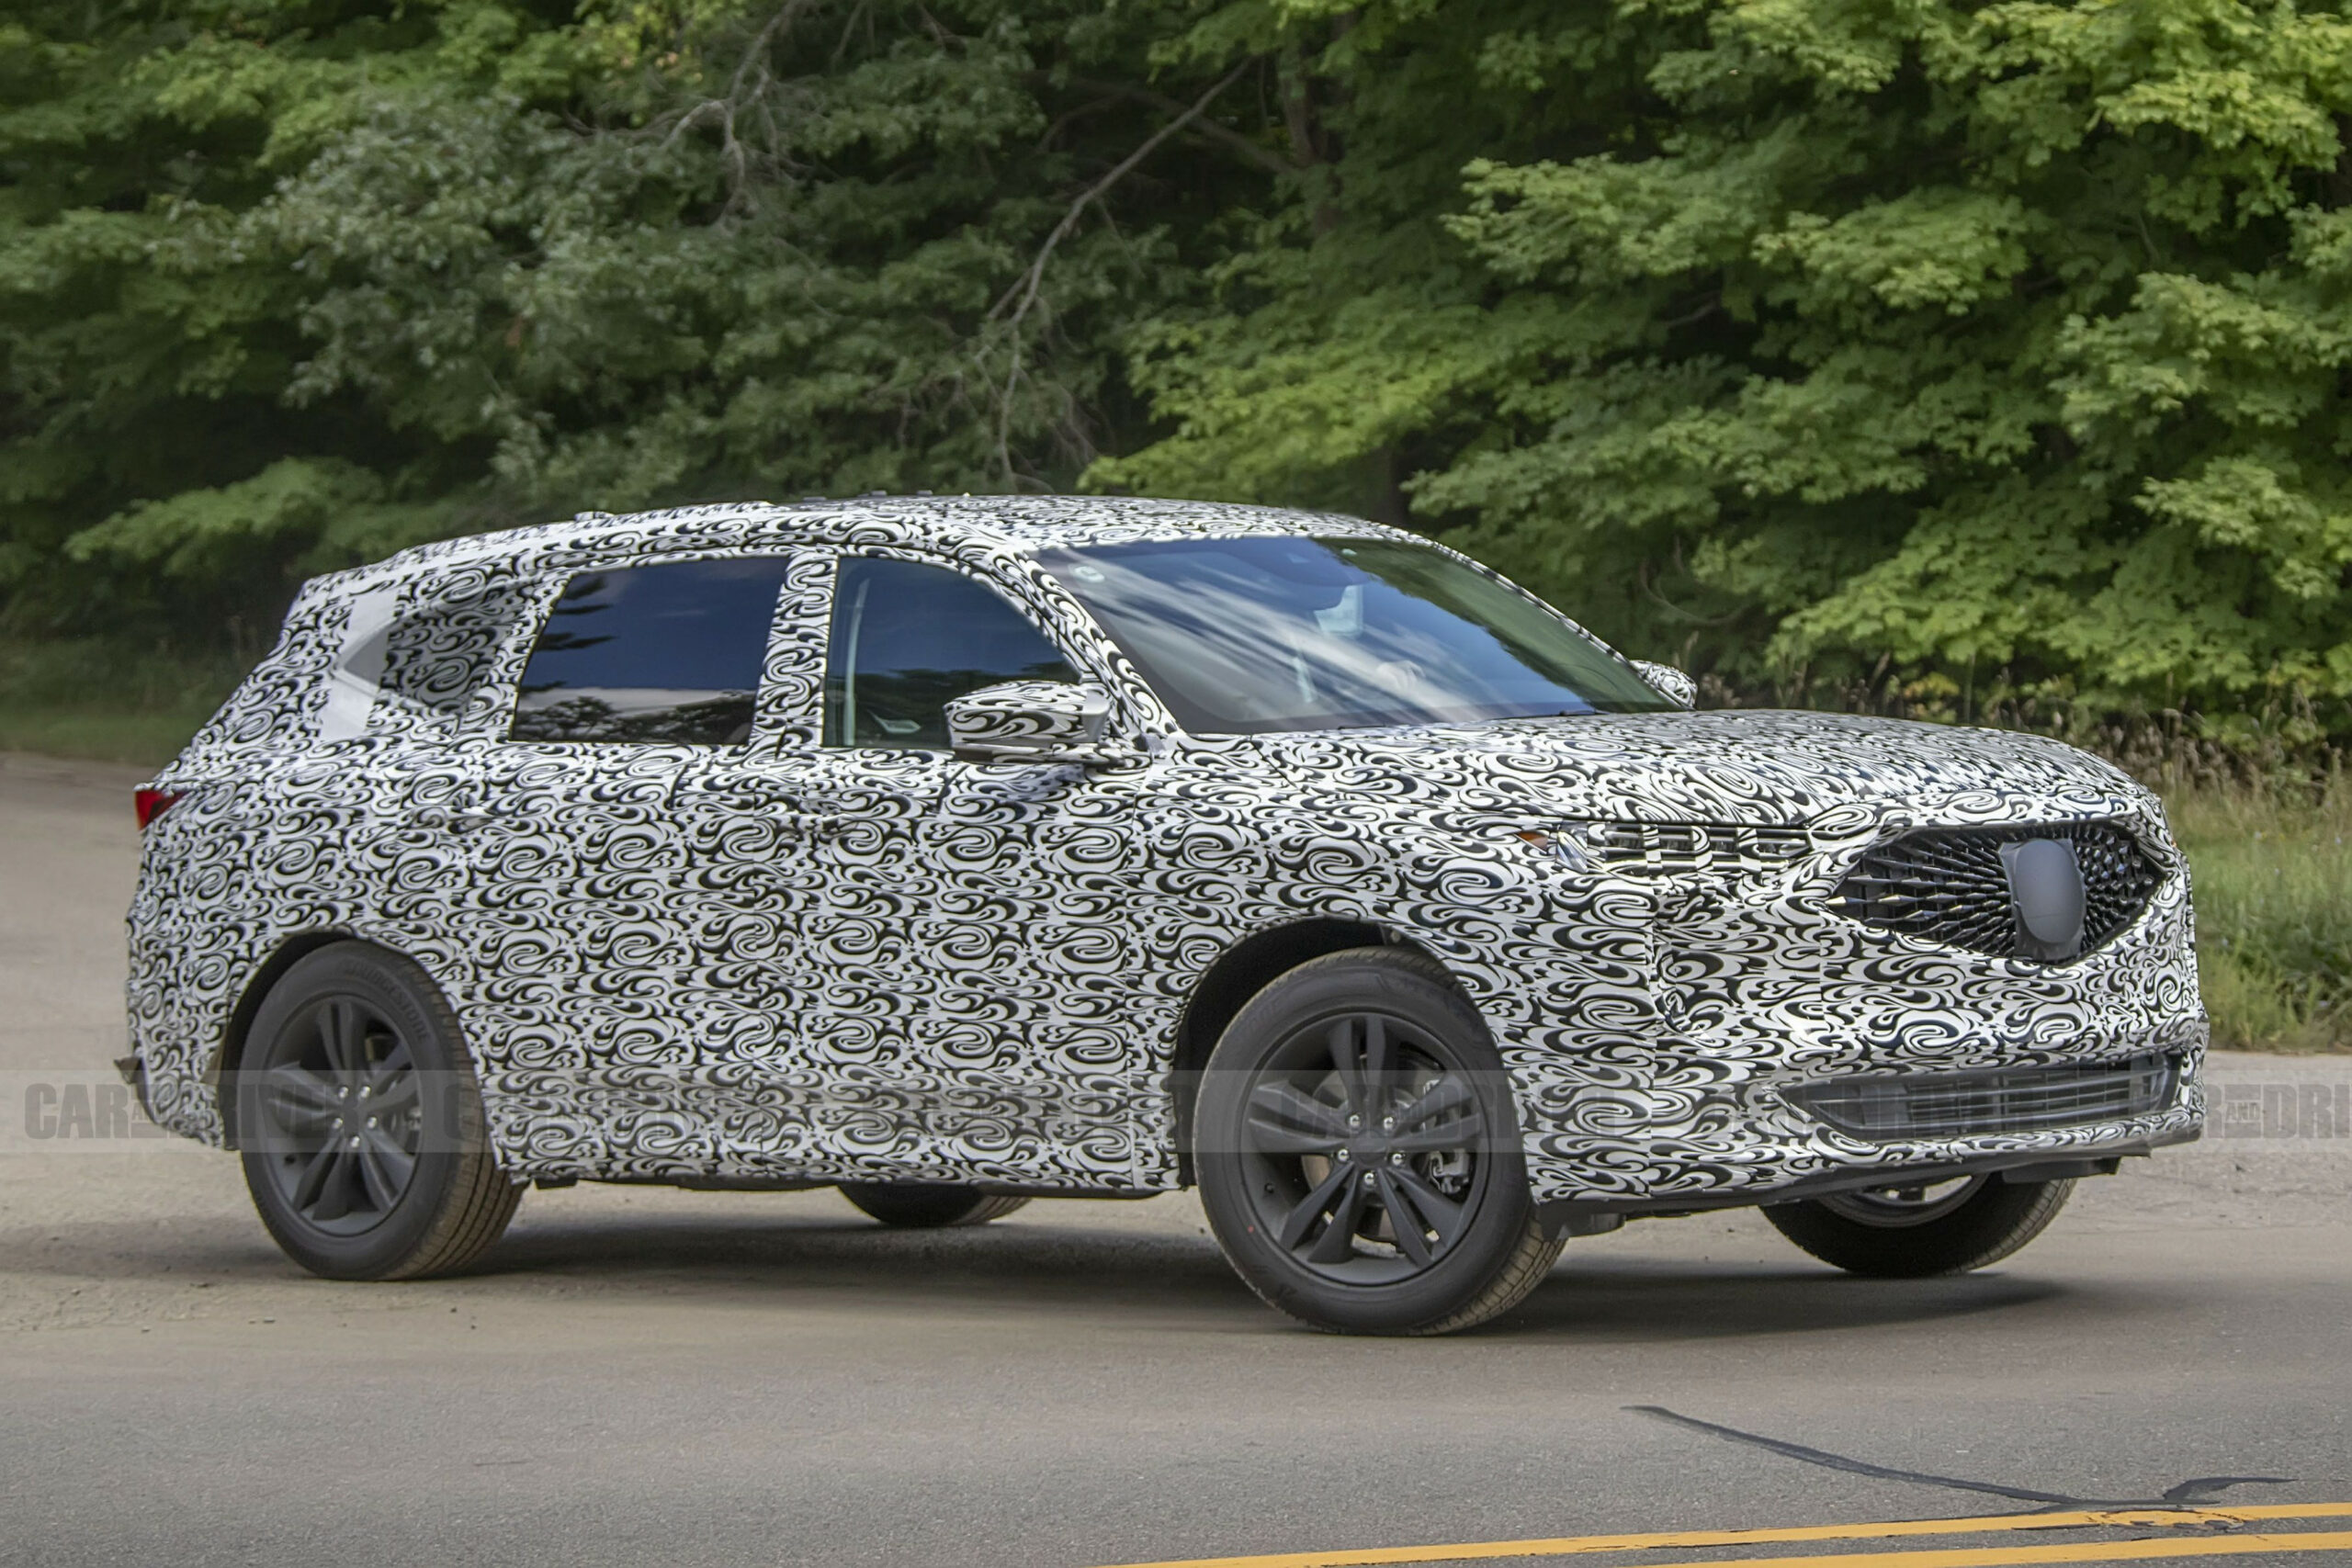 Exterior and Interior 2022 Acura Mdx Changes